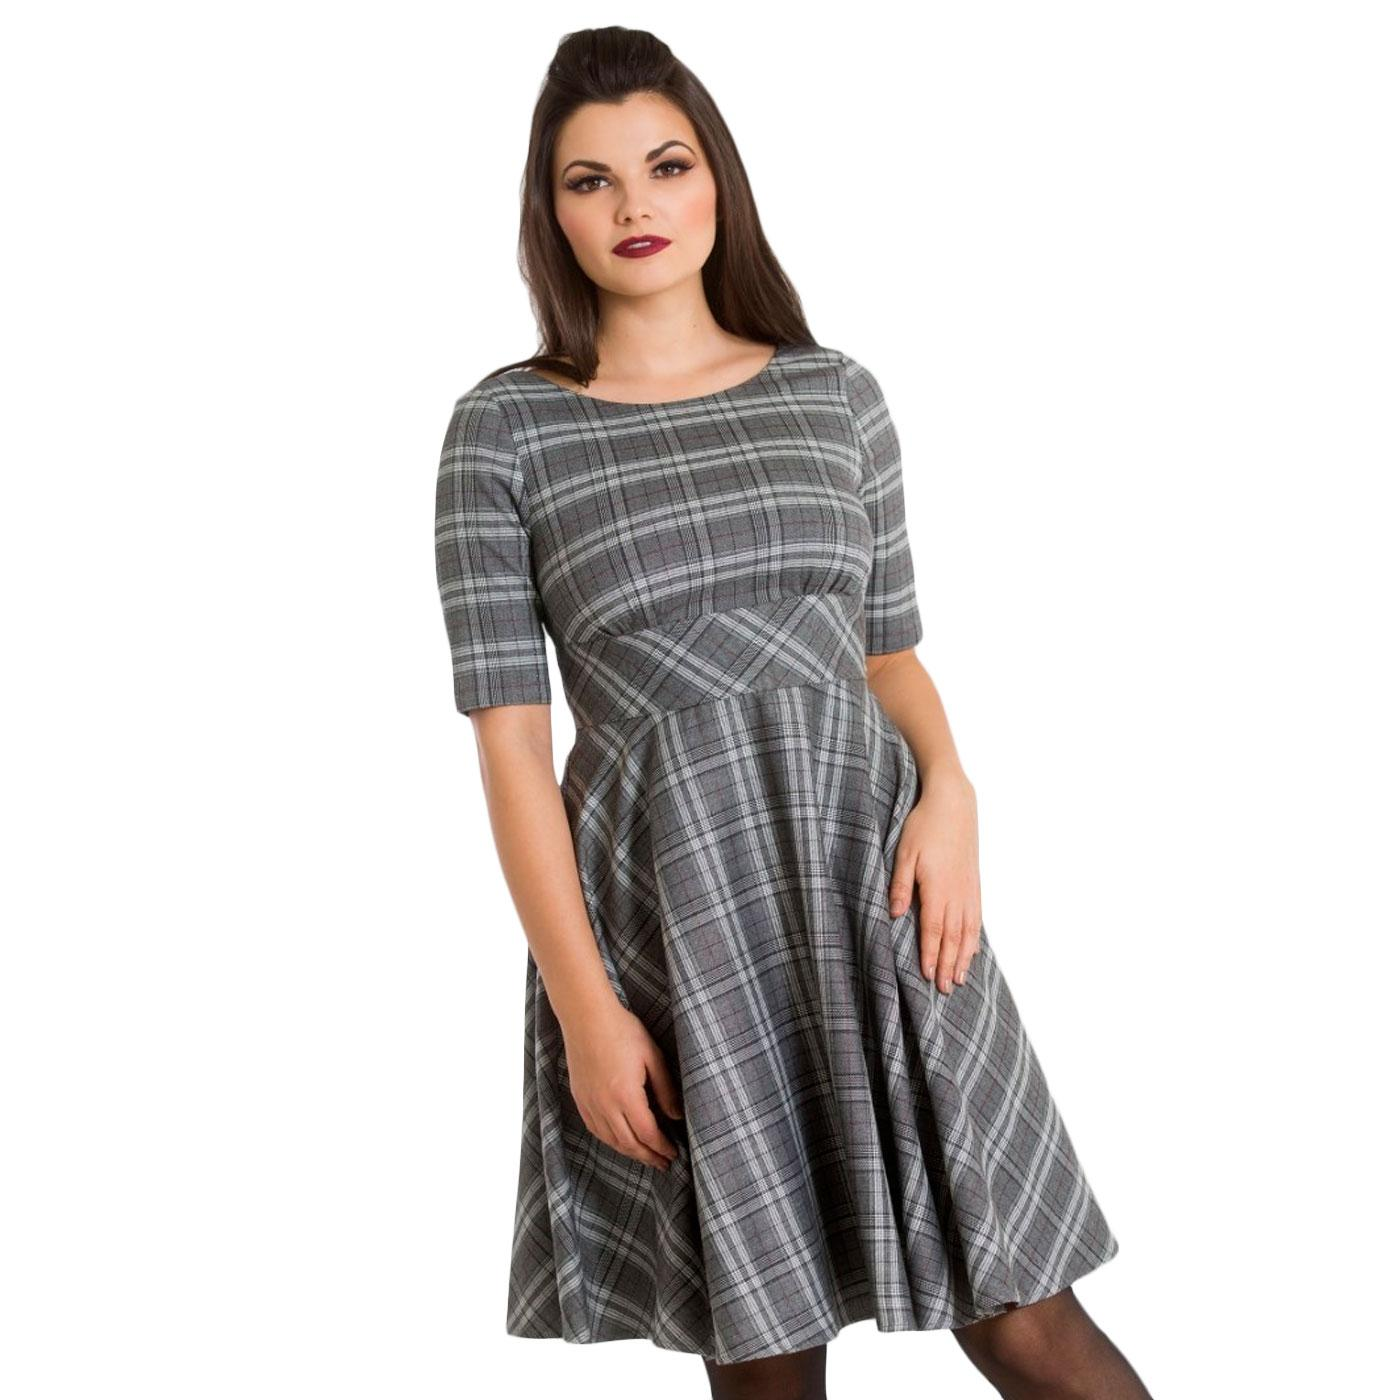 Frostine HELL BUNNY Retro Tartan Plaid Mid Dress